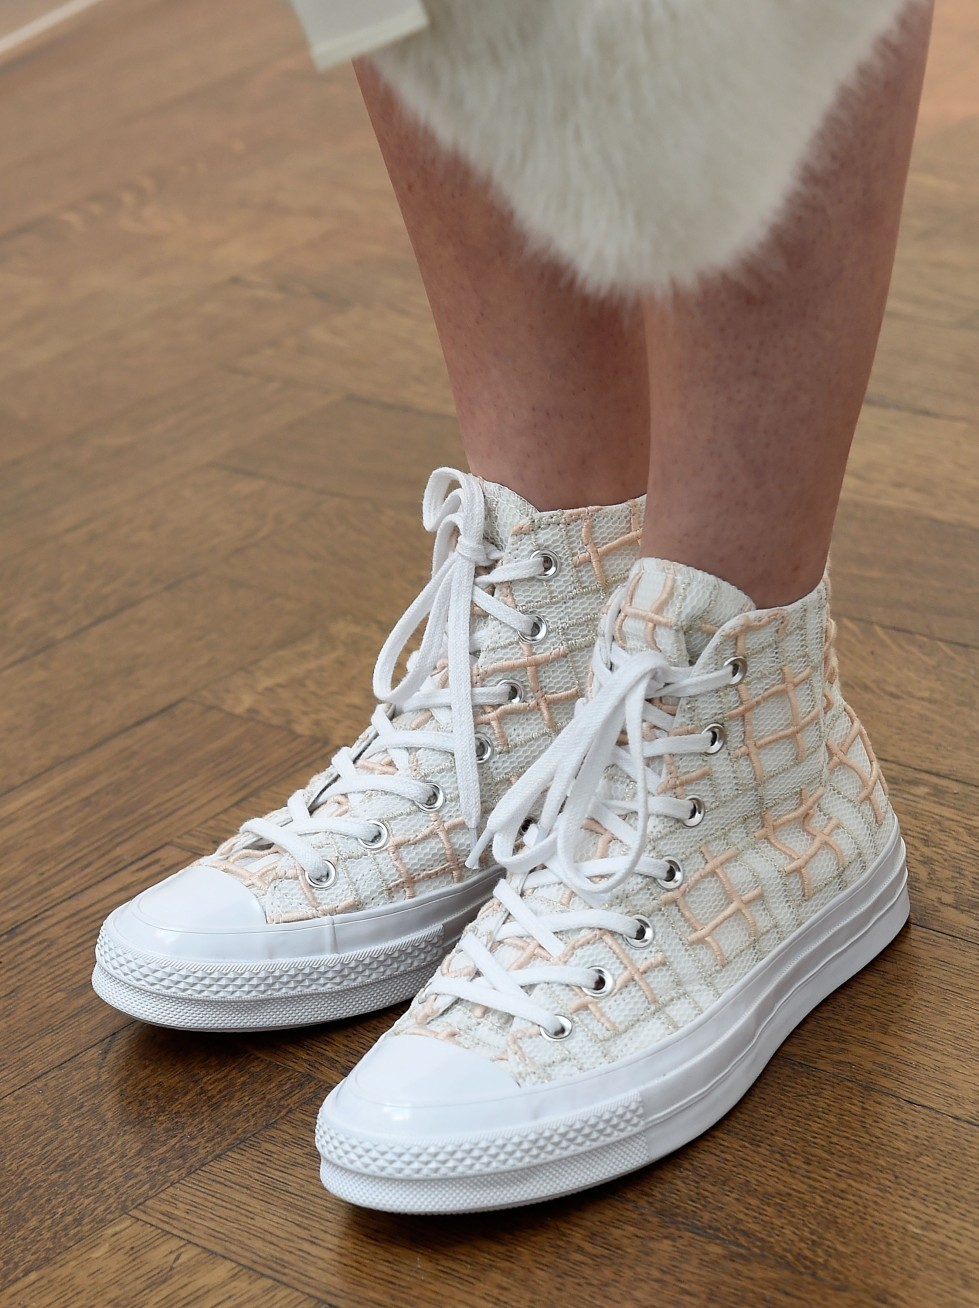 Shrimps SS17 Presentation Featuring Converse